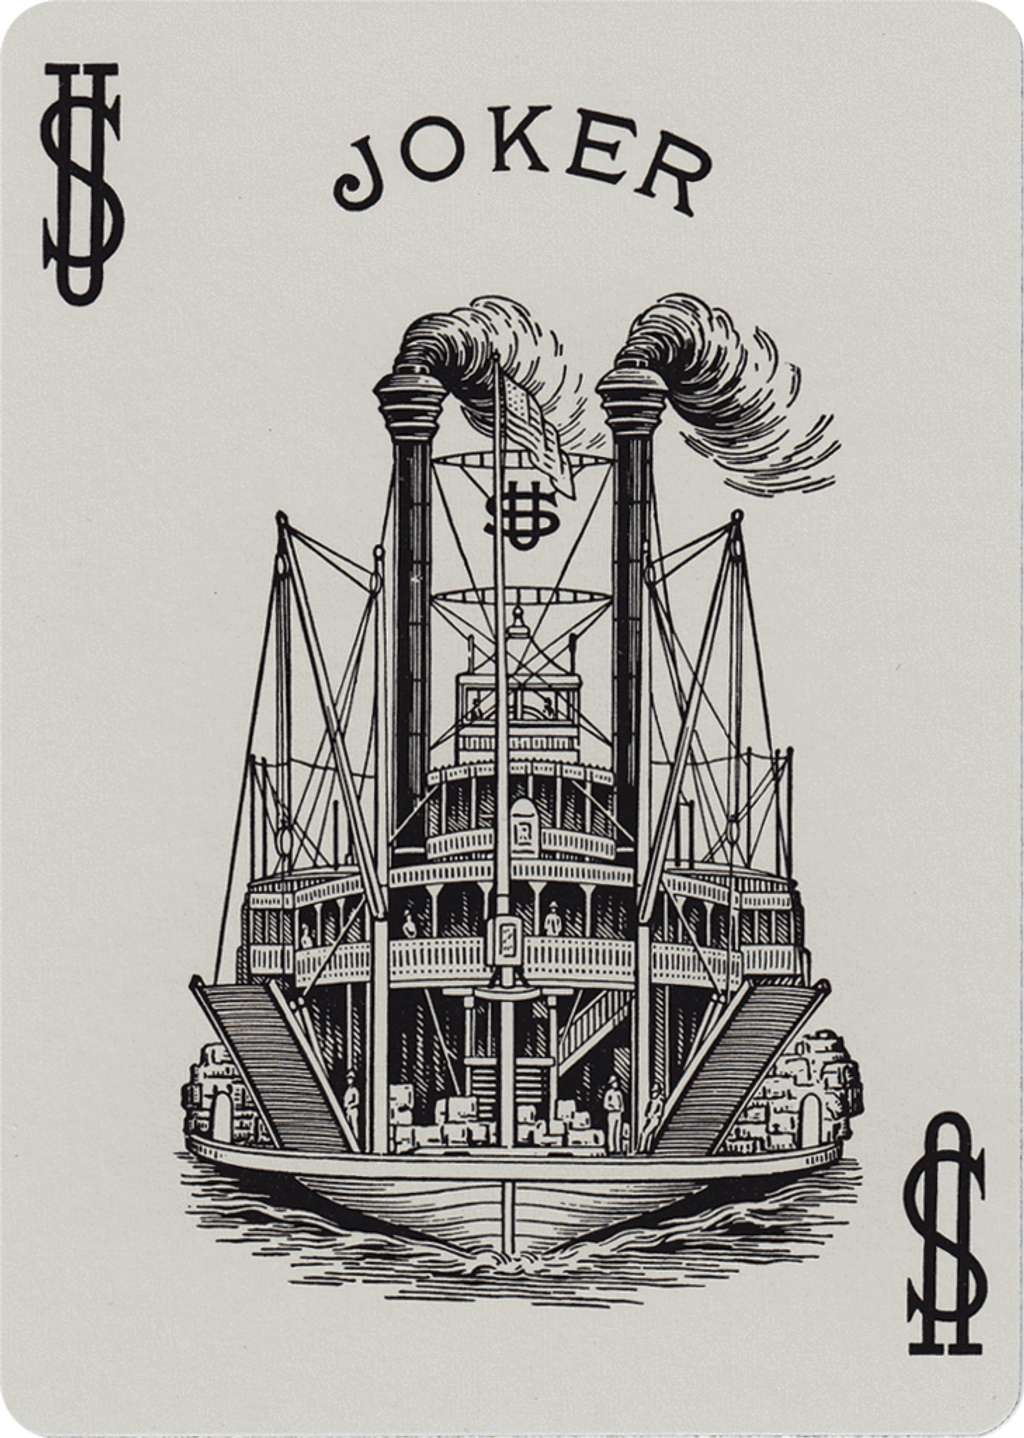 playing-cards-steamboat-999-3_1024x1024.png